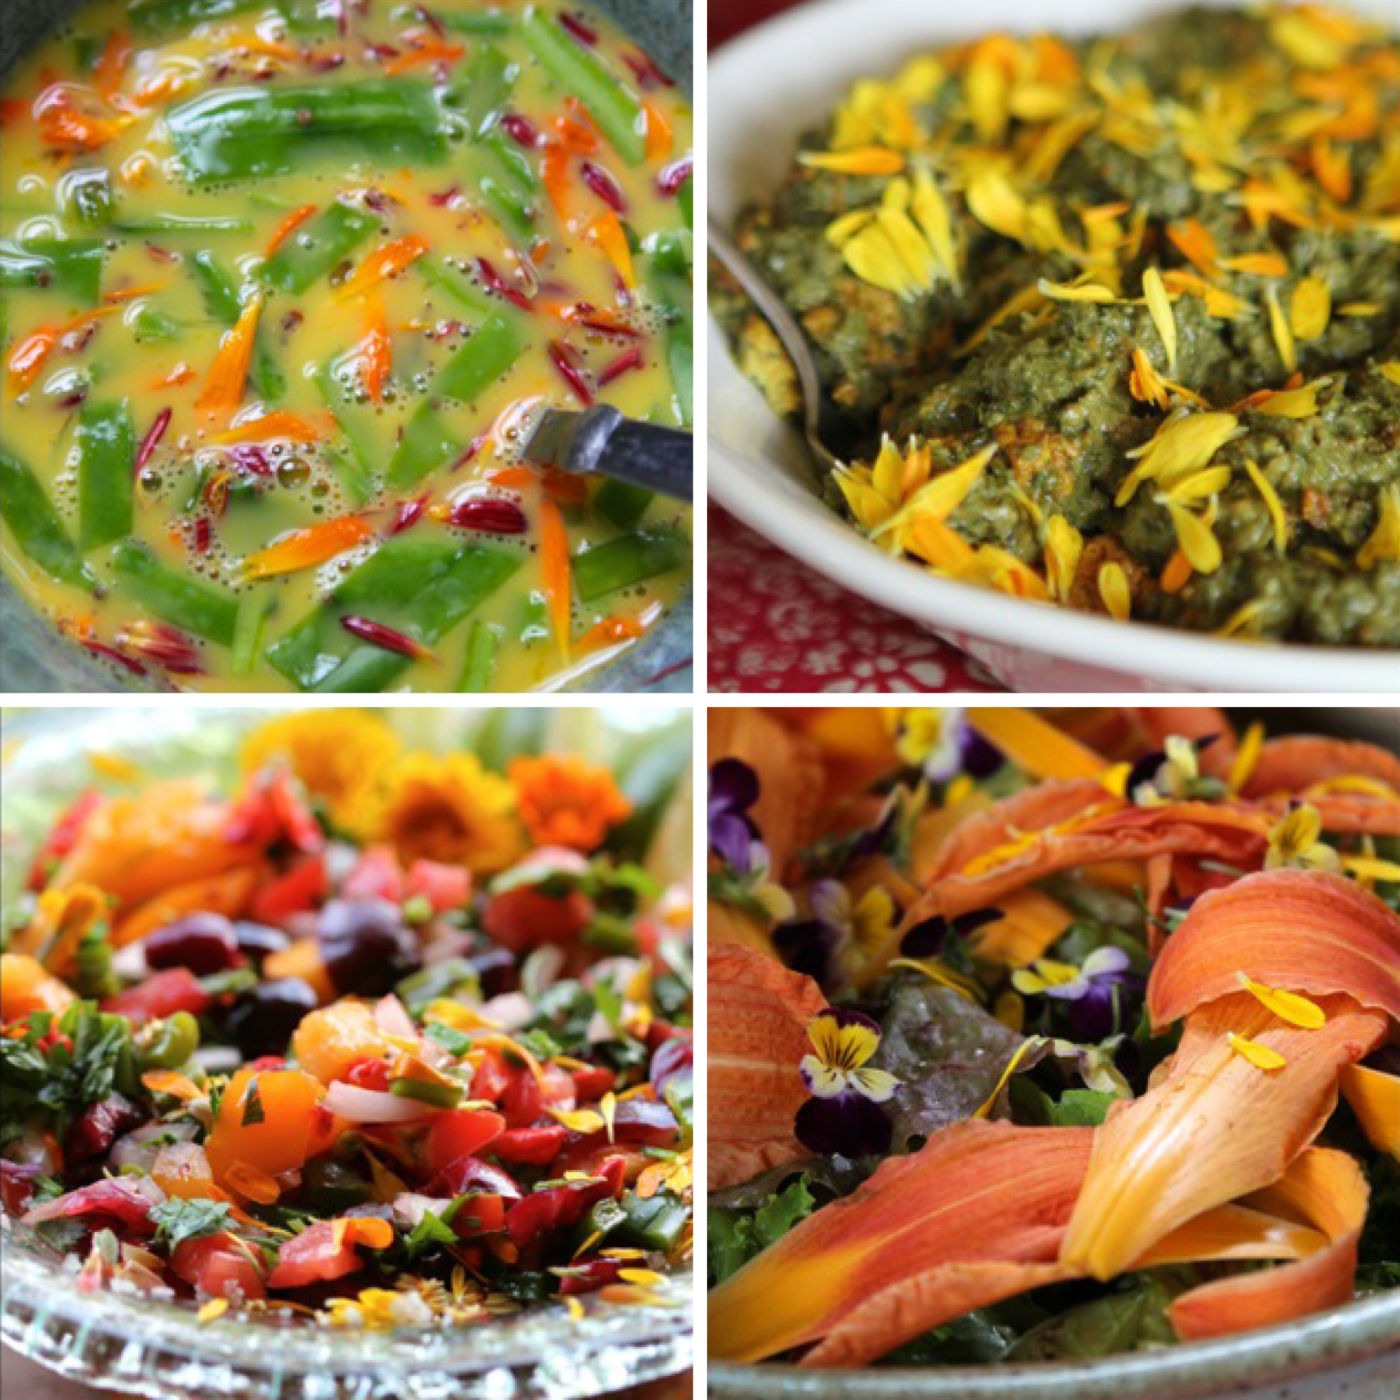 Dishes made with calendula flowers